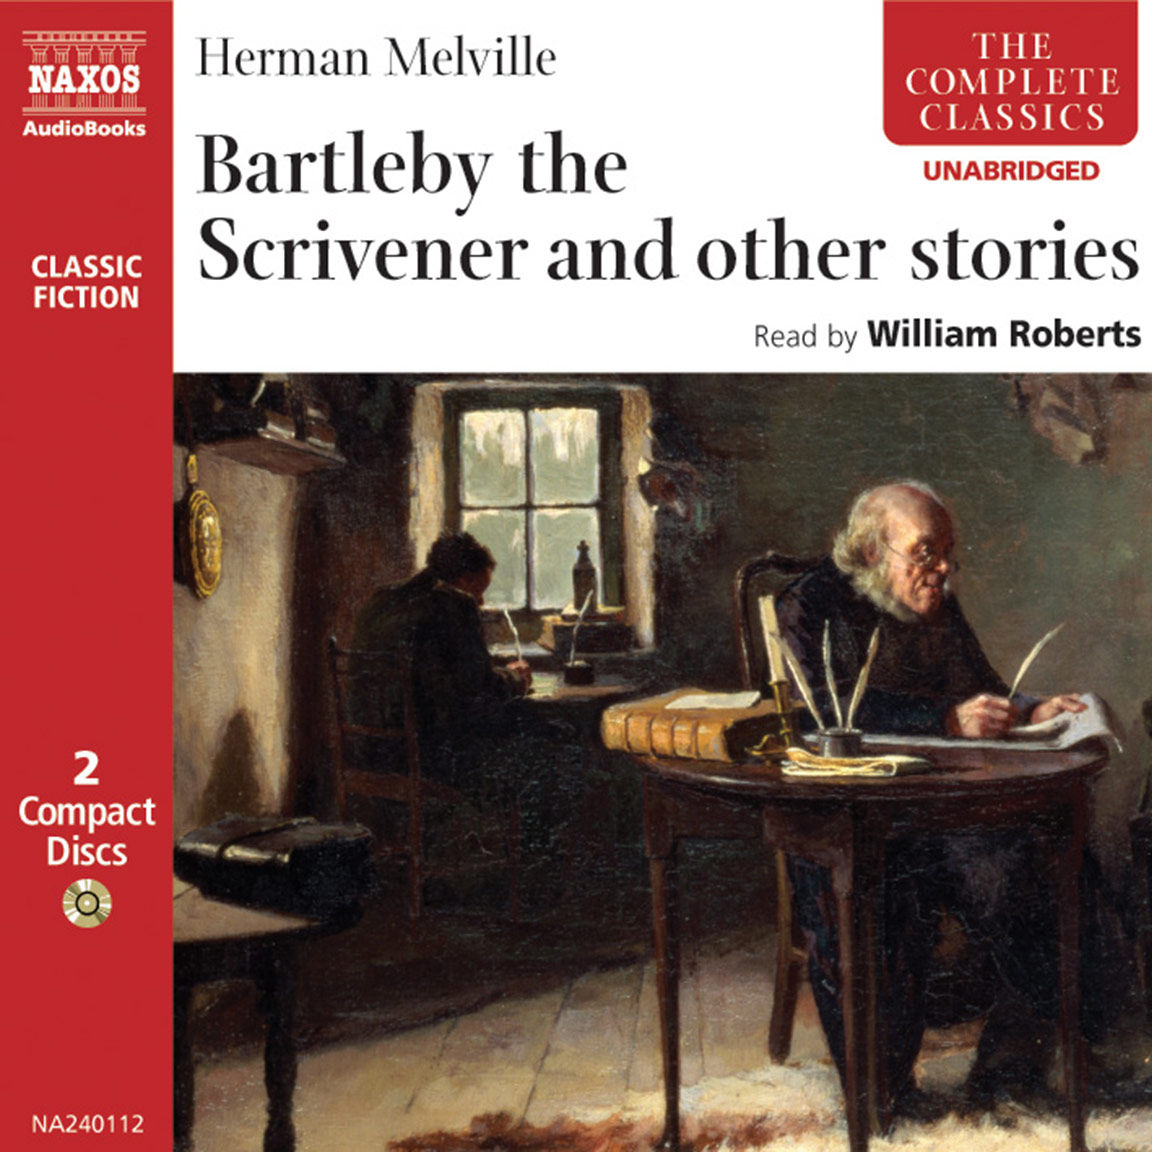 bartleby the scrivener and other stories unabridged naxos  bartleby the scrivener and other stories unabridged naxos audiobooks